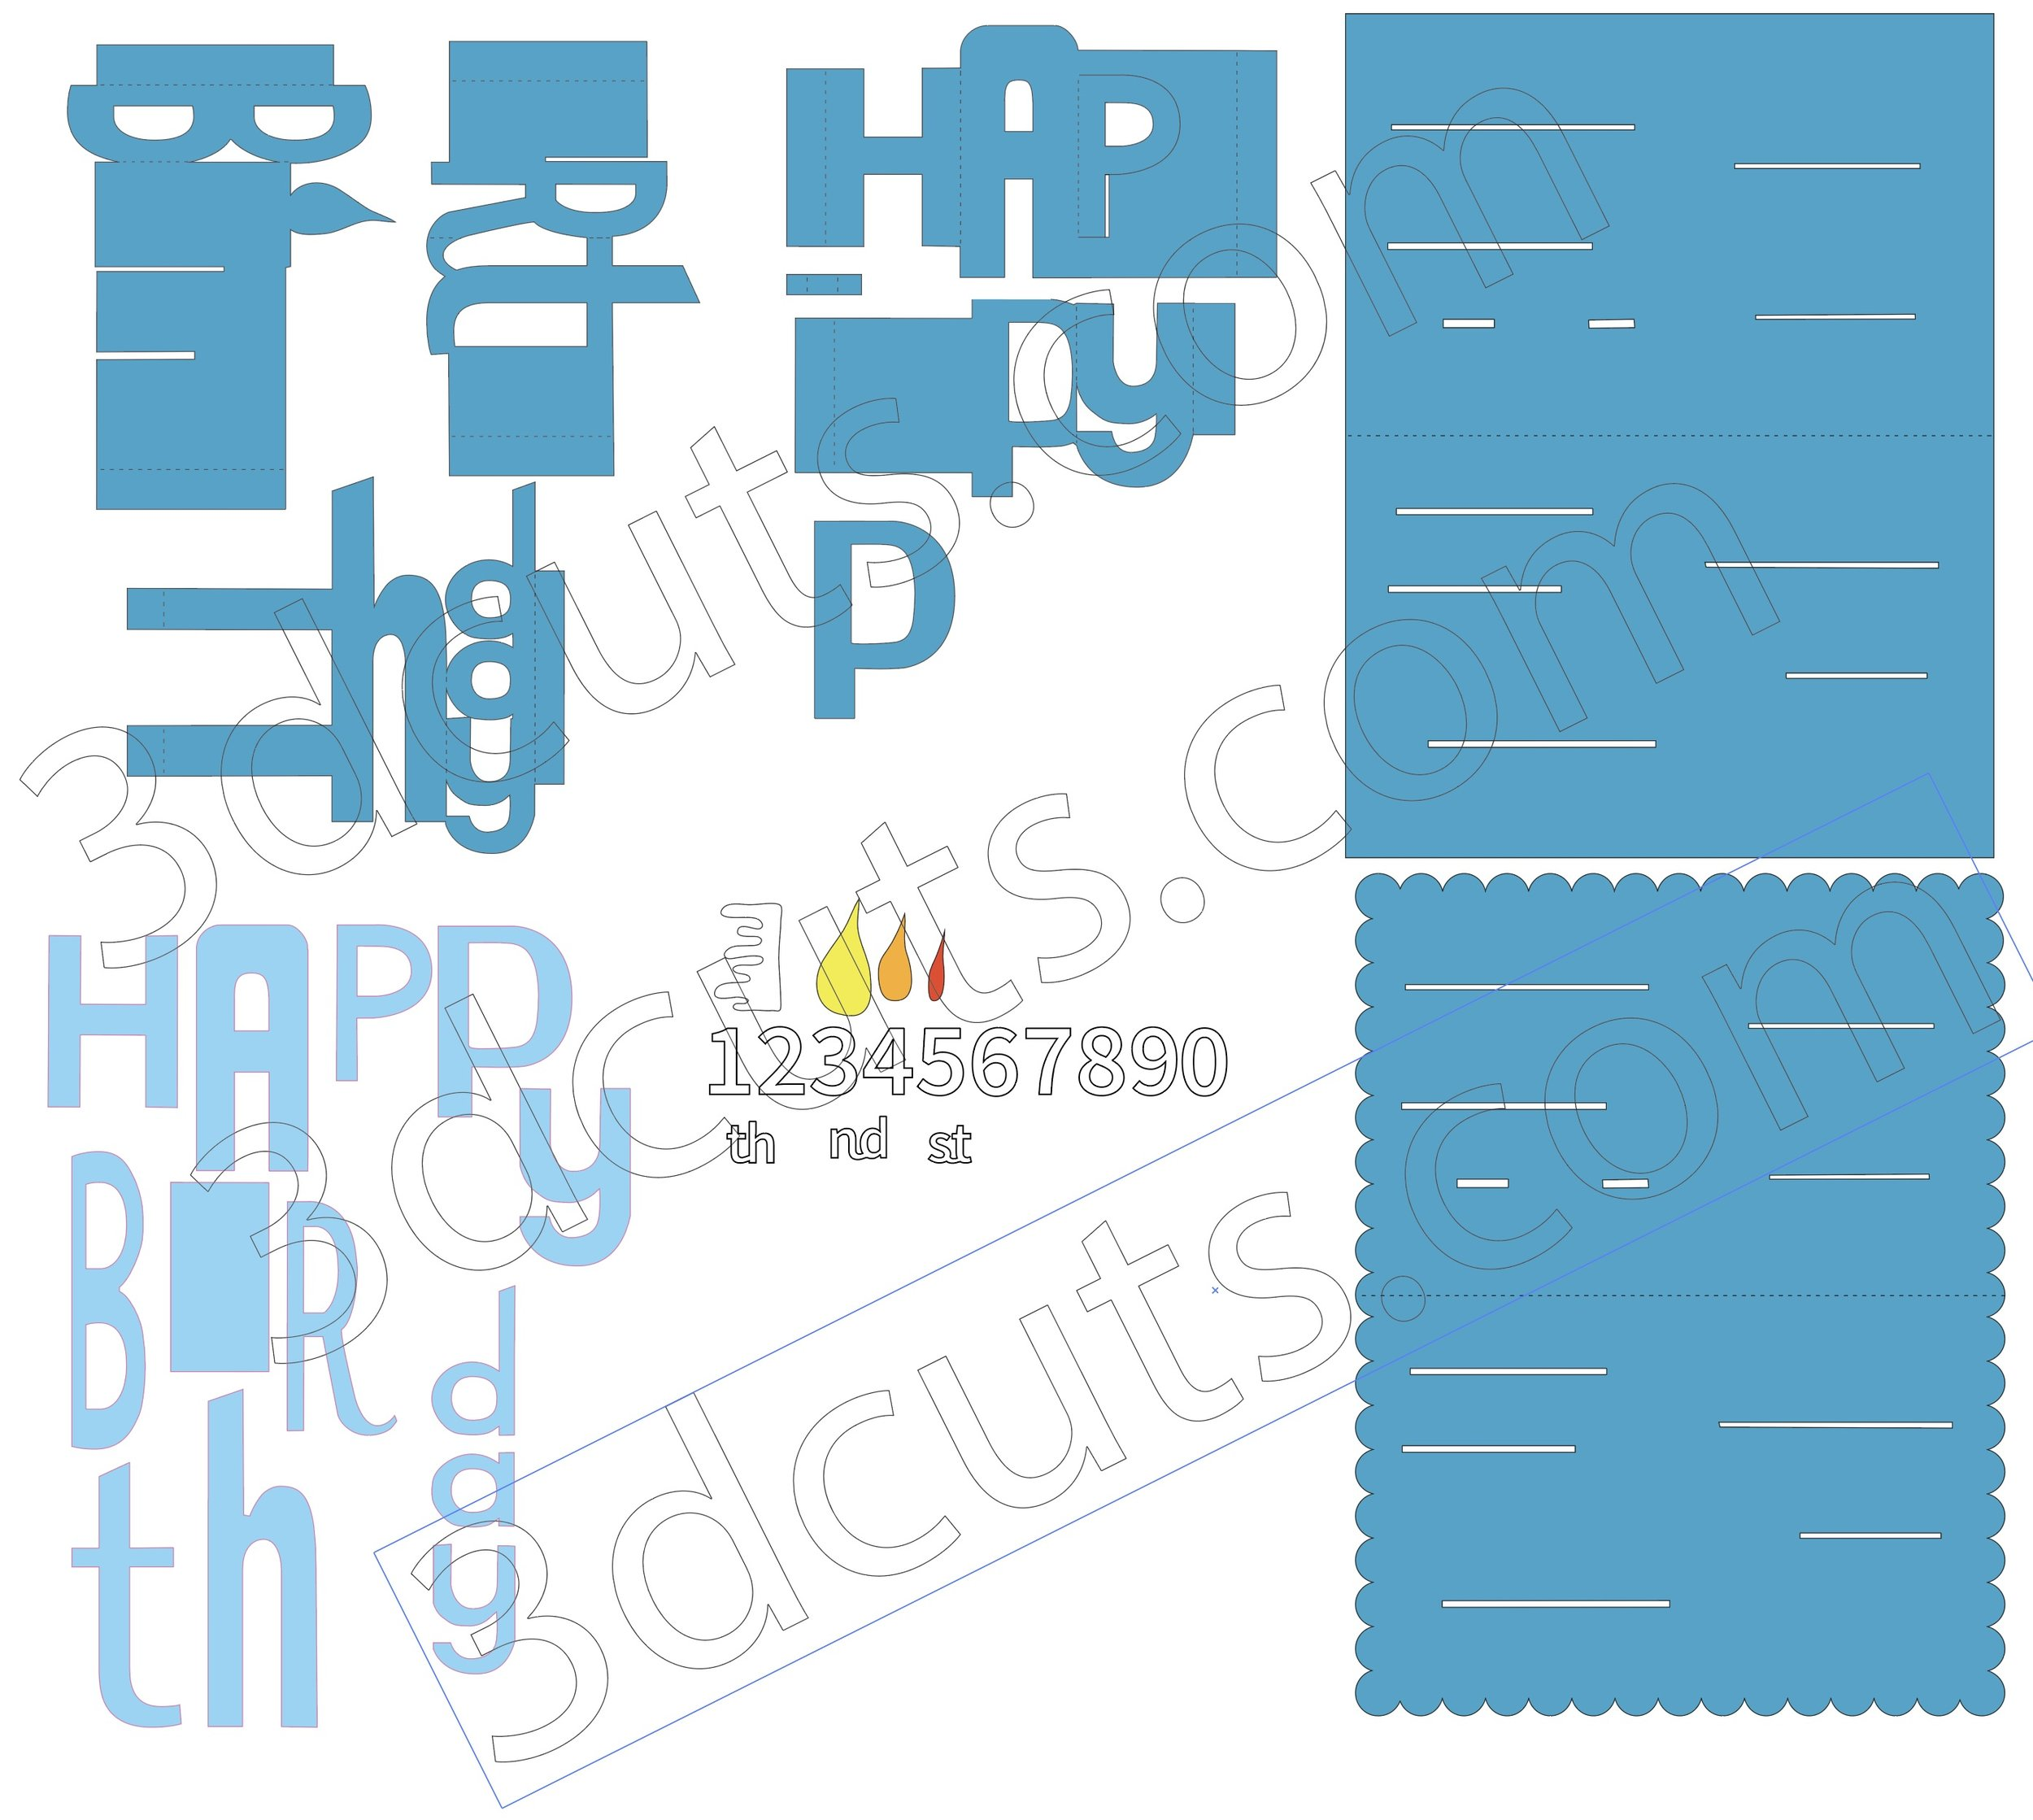 Happy Birthday Pop-up card - whimsy font, 3DCuts.com, Marji Roy, 3D cutting files in .svg, .dxf, and .pdf formats for use with Silhouette, Cricut and other cutting machines, paper crafting files